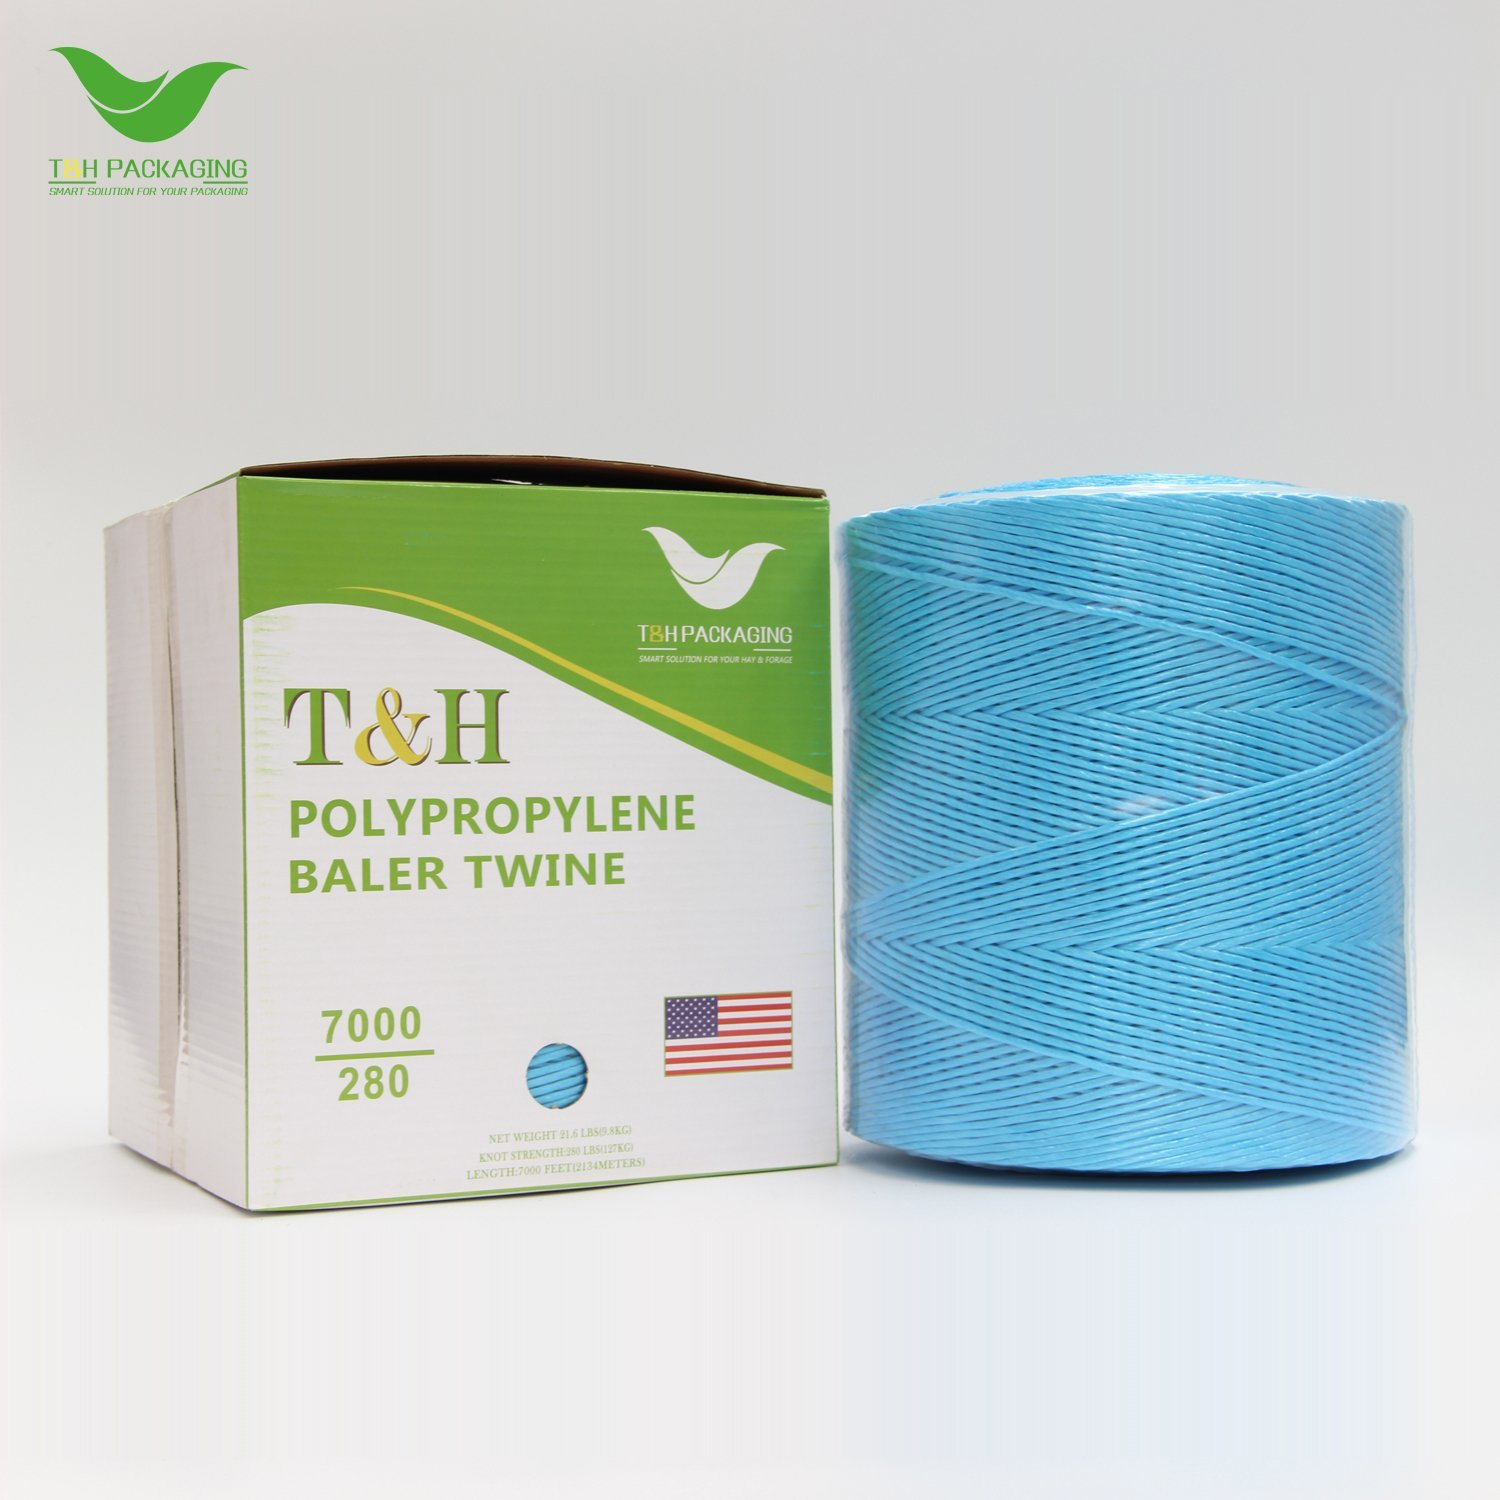 T&H Baler Twine 7000 Ft 280 Lb Tensile Poly Tying Twine for Square Baler, Blue (Pack of 6)